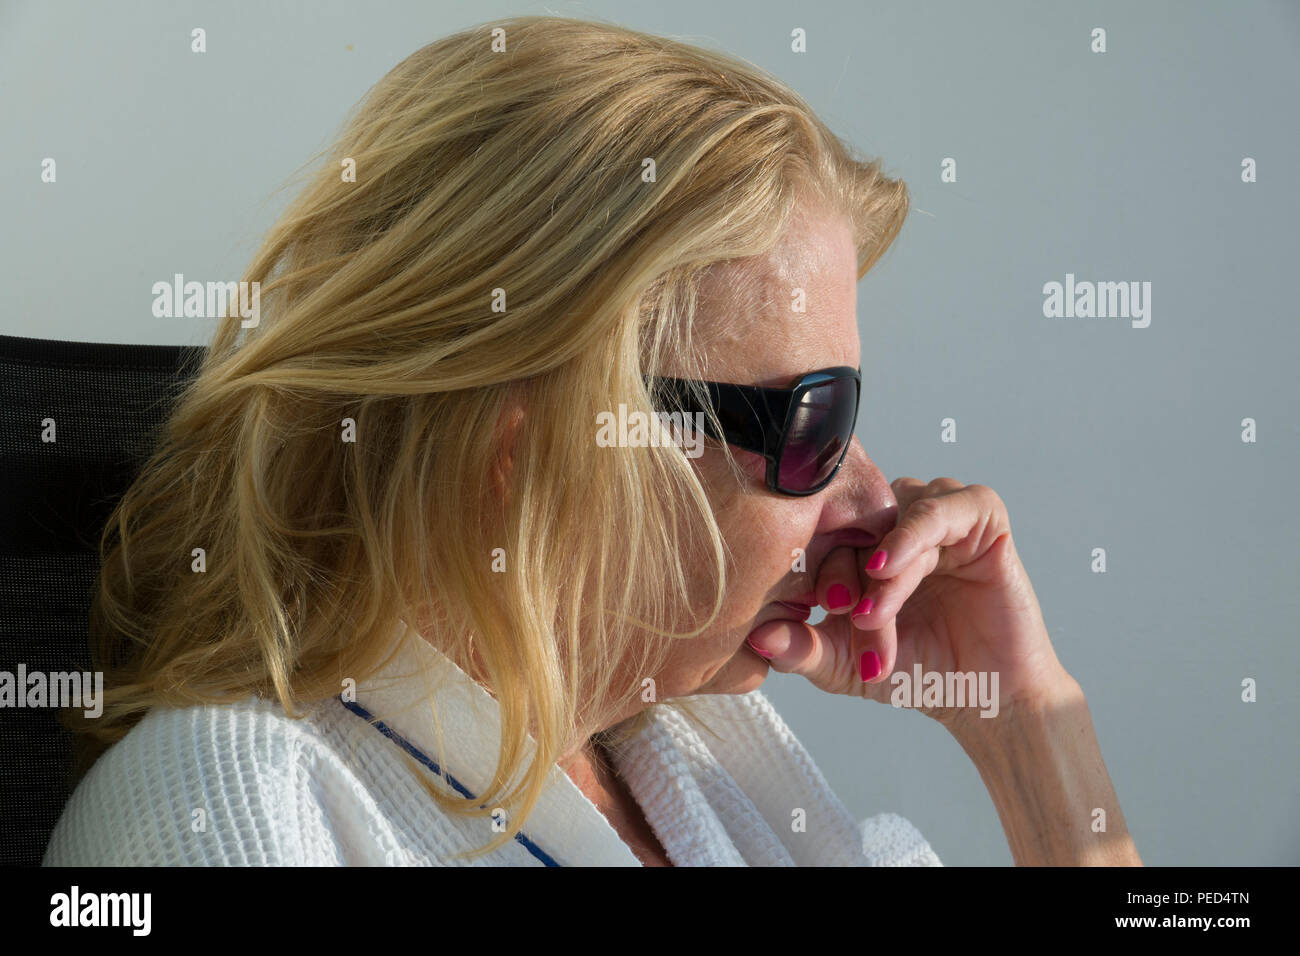 Close up of an Adult female thinking in a pensive pose - Stock Image